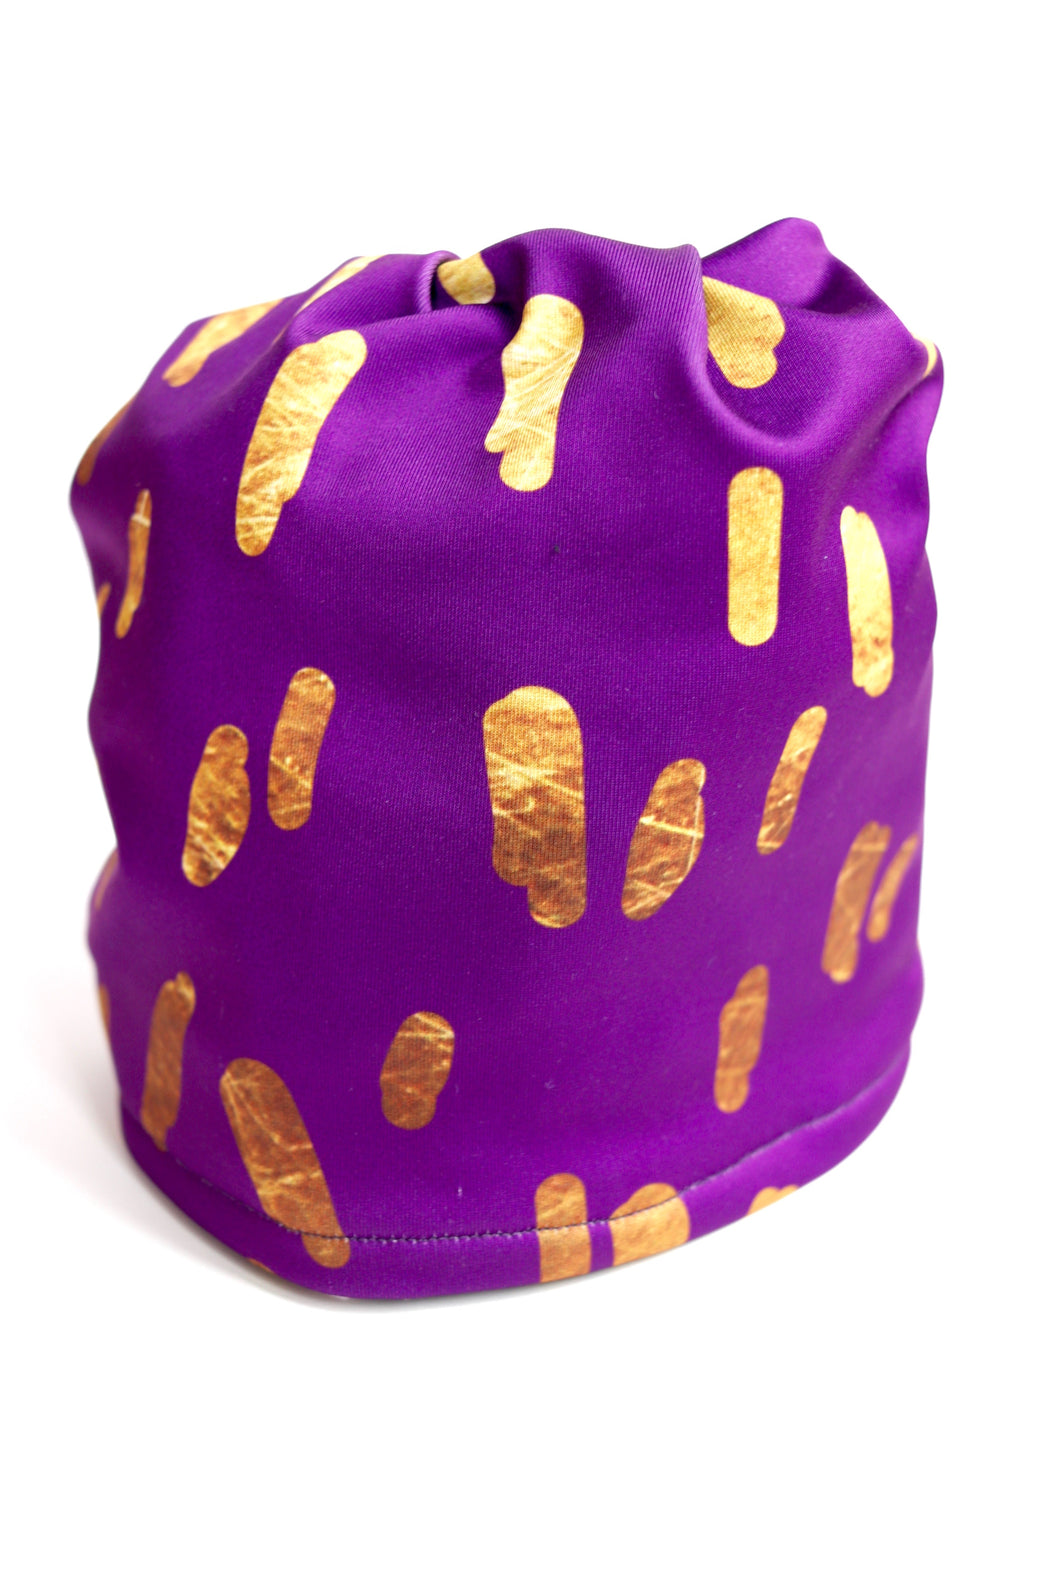 Gold Confetti Pony Tail Fleece Lined Hat